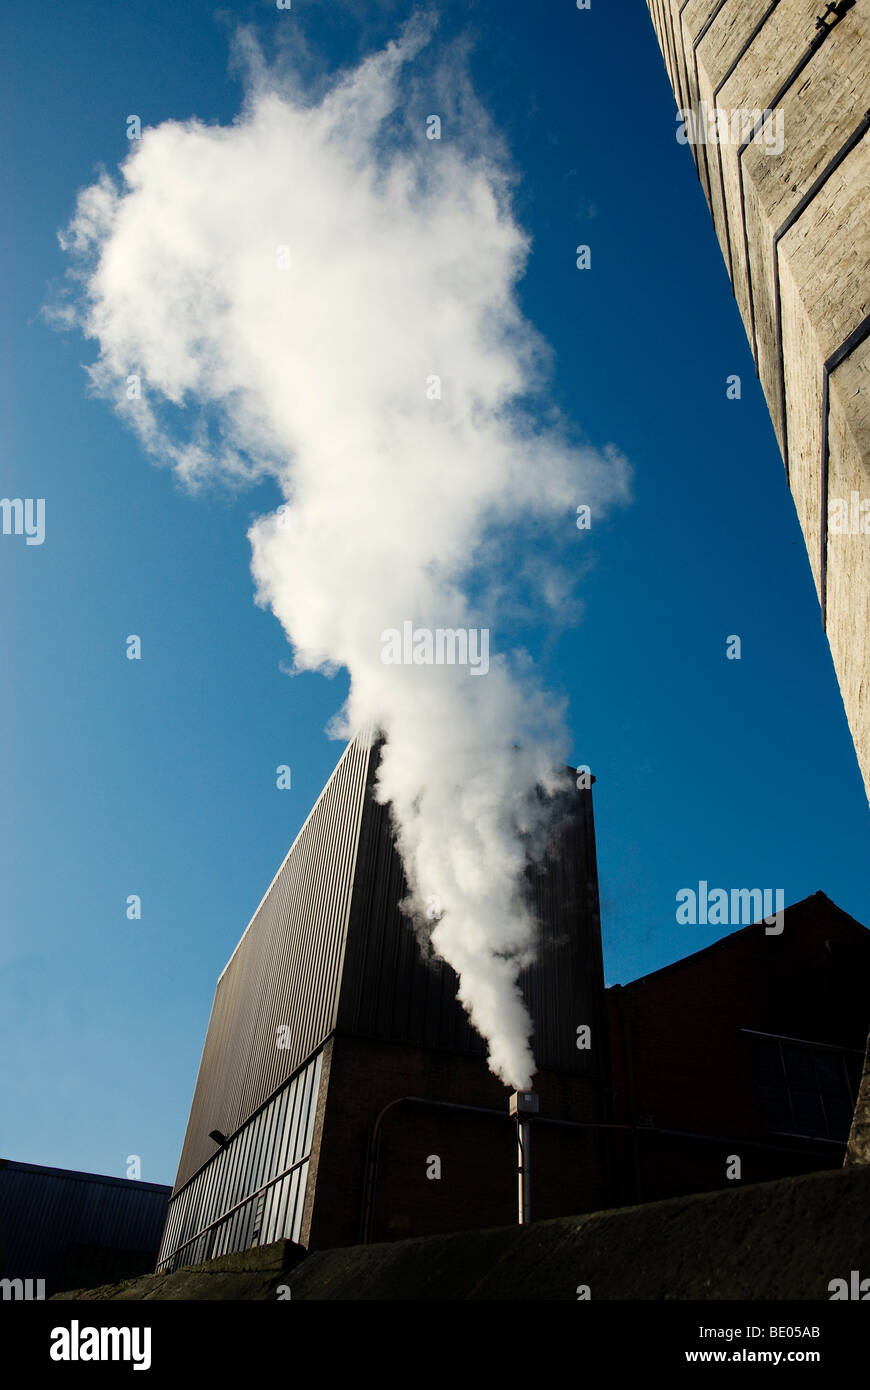 Steam coming out of pipe next to factory buildings against deep blue sky - Stock Image